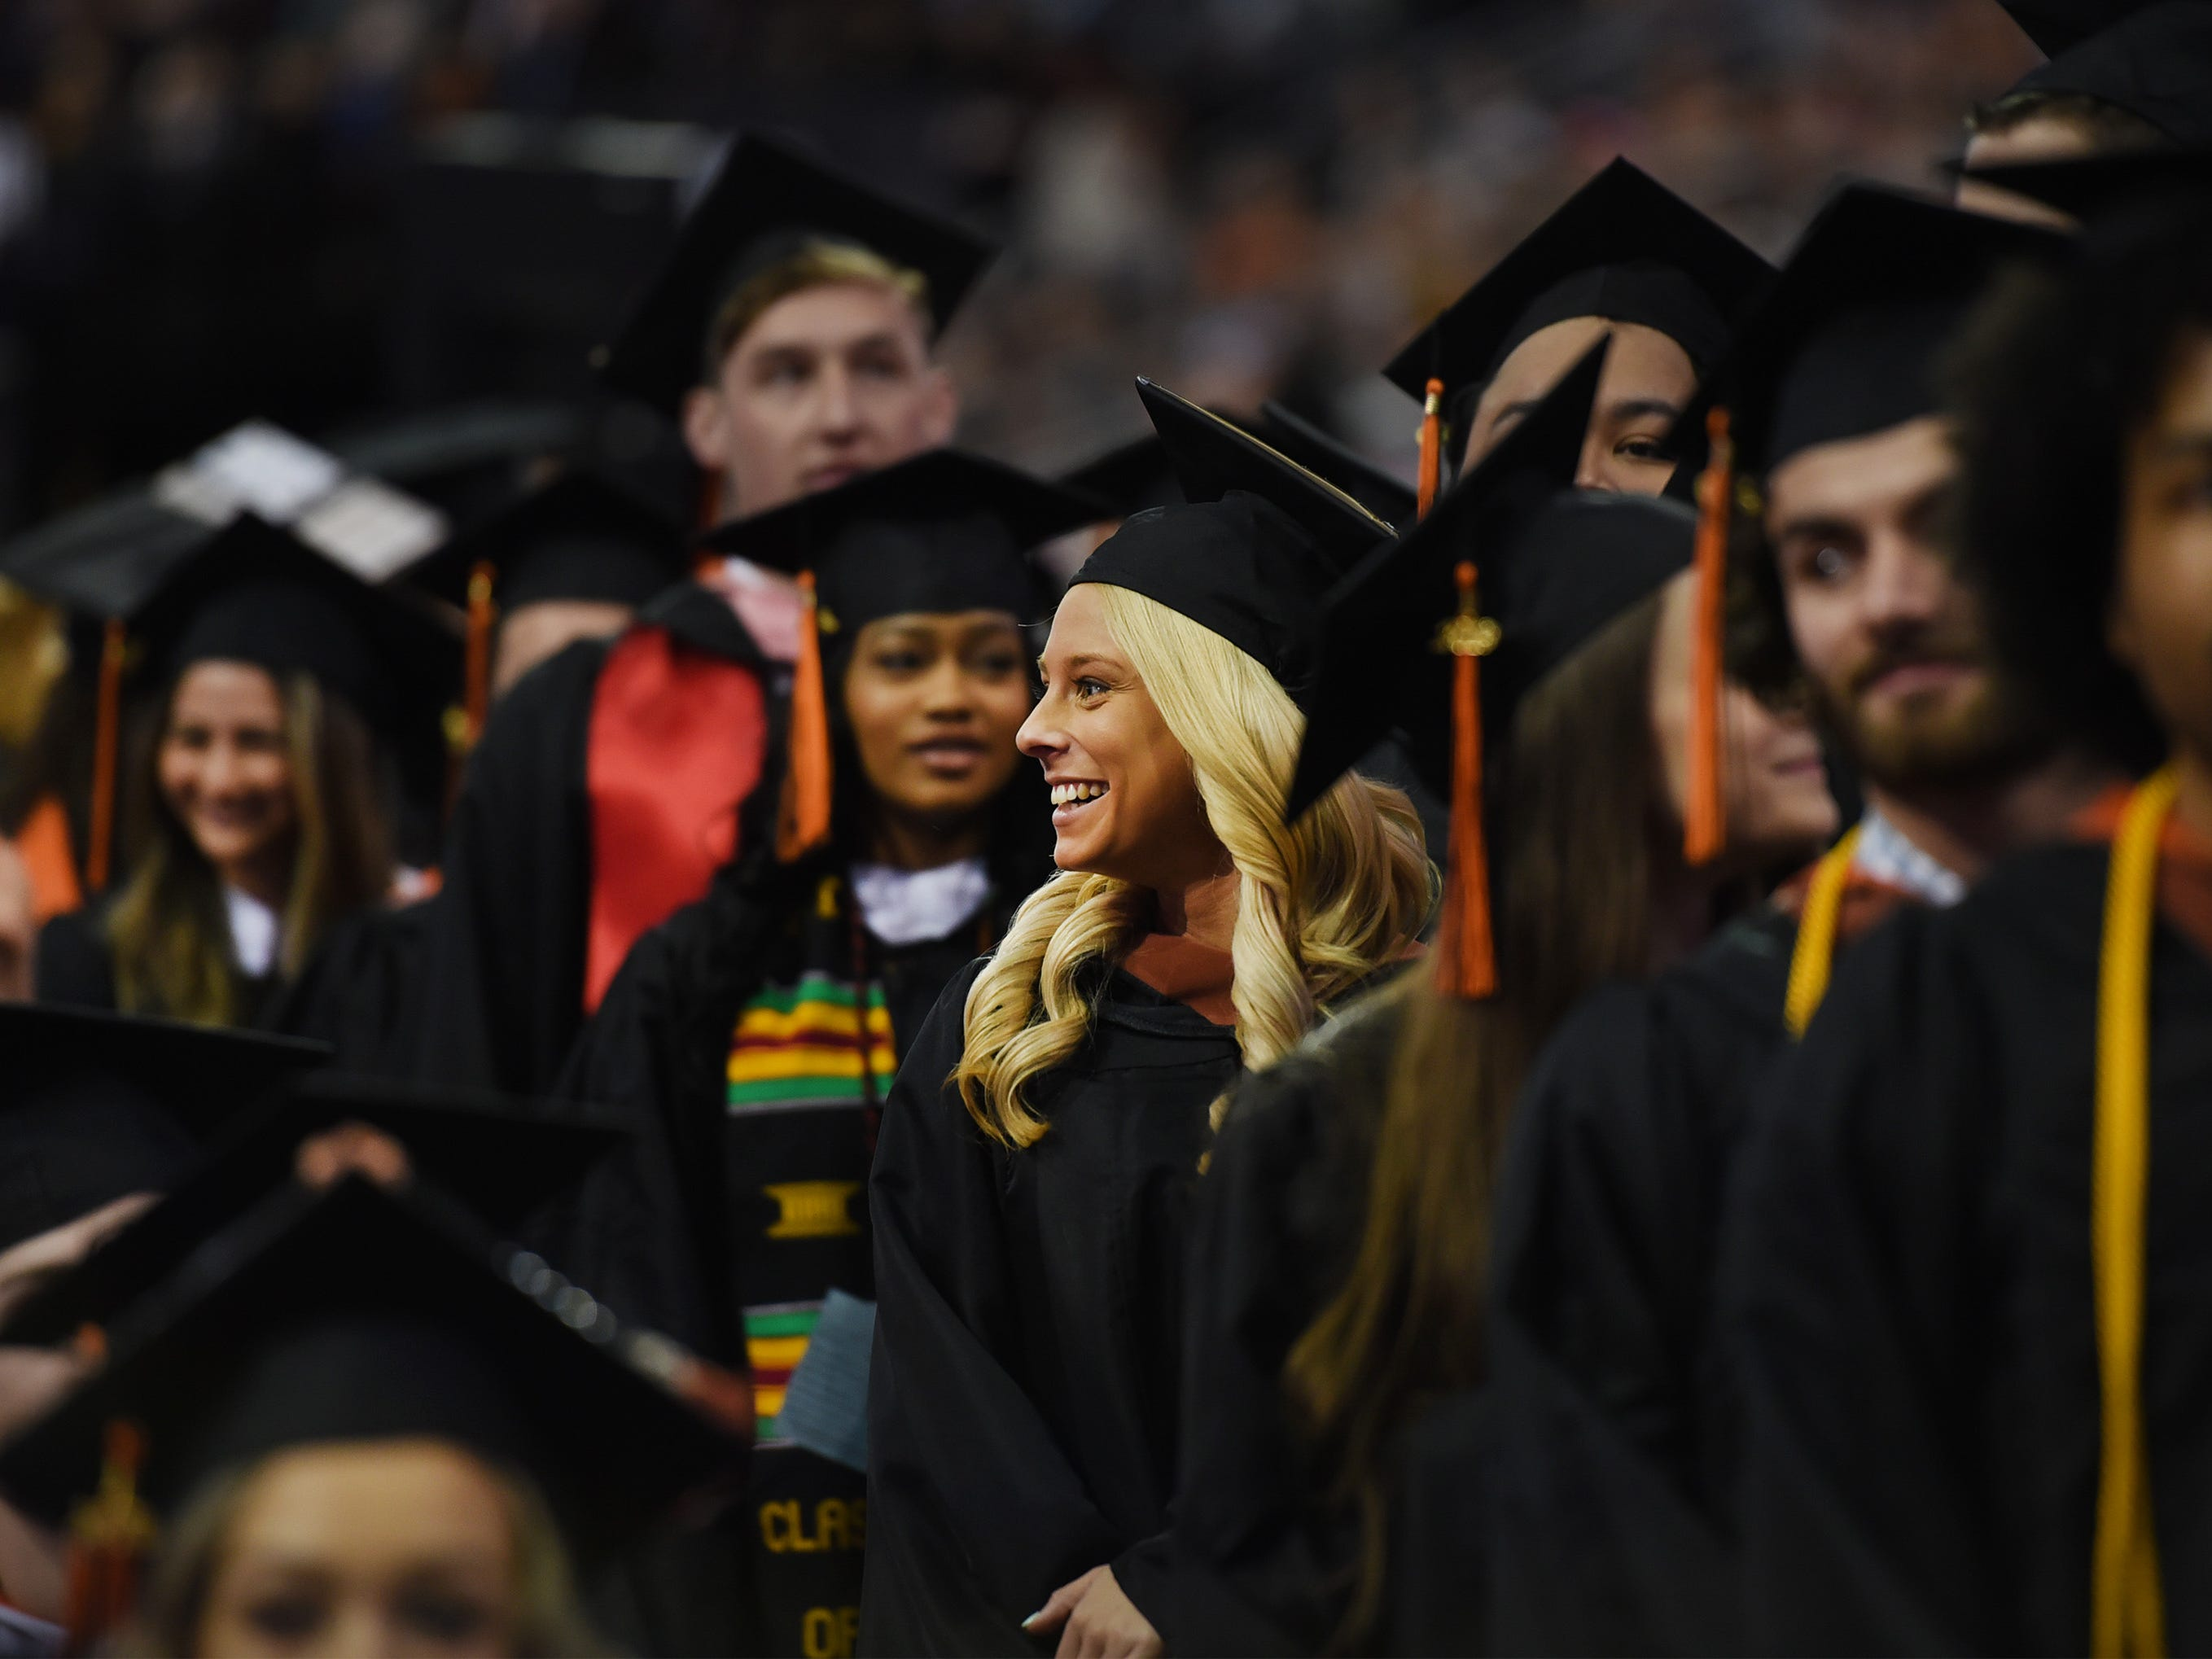 Graduates stand in line to receive their degrees during the William Paterson University 2019 Commencement at the Prudential Center in Newark on 05/15/19.